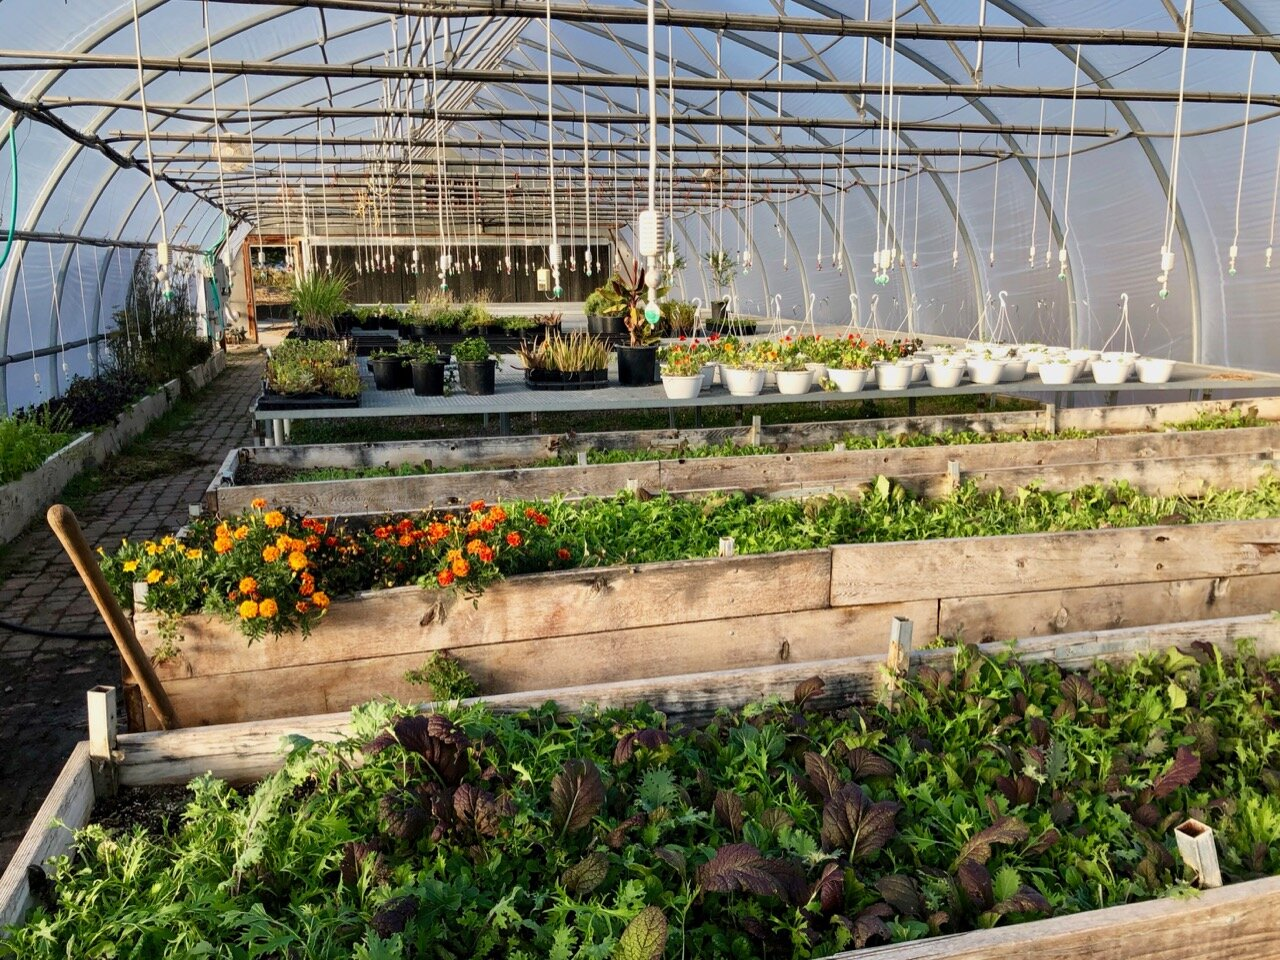 View inside a greenhouse with rows of plants and sprinklers above